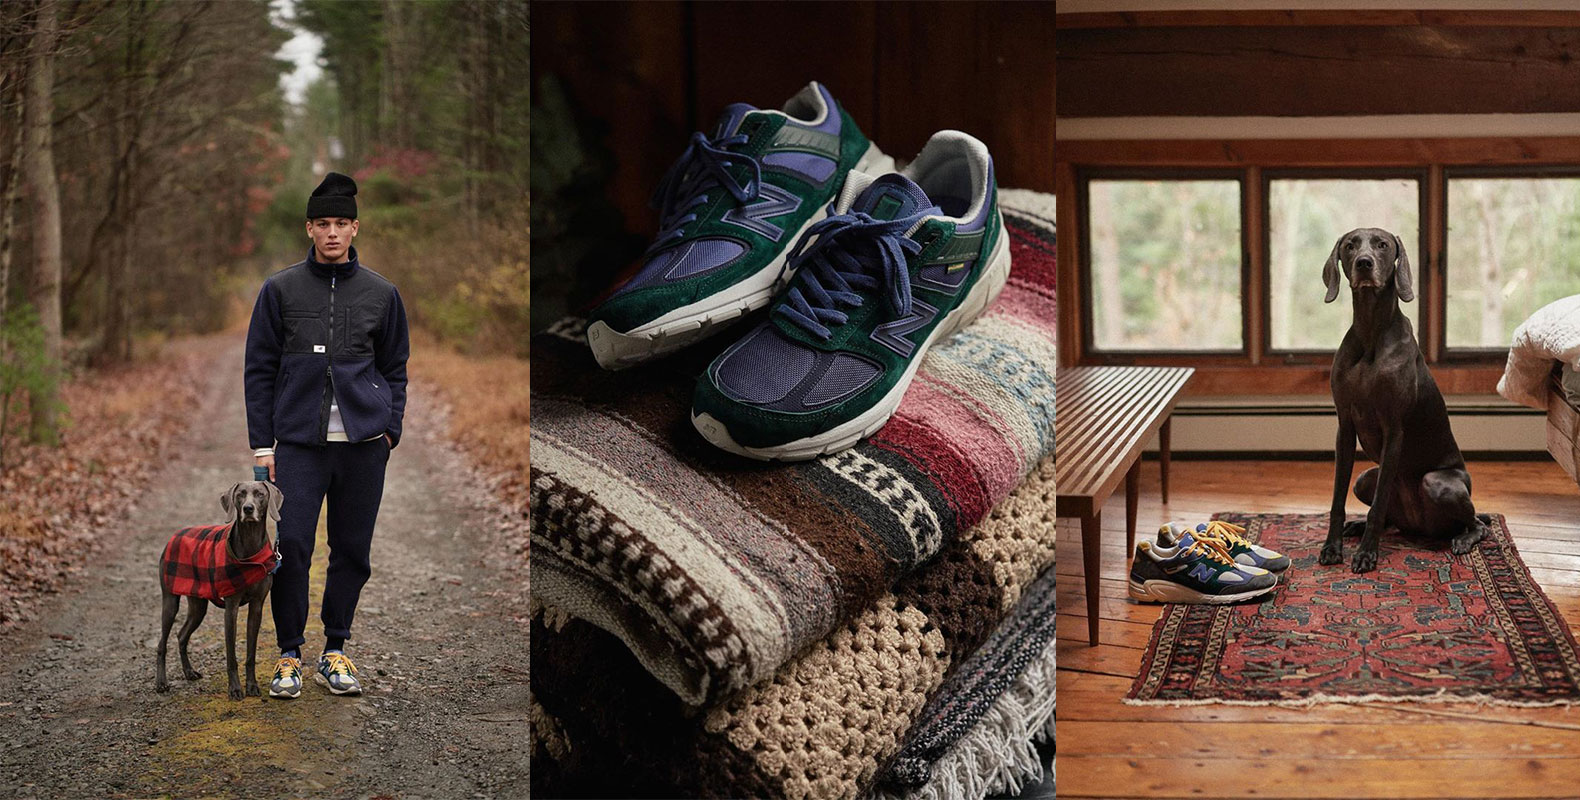 Aimé Leon Dore x New Balance just dropped the New Balance 990s series. The new silhouettes 990v2 n 900v5 drawn upon the colors, sights n sounds of a trip from NYC to the lush forests of upstate NY State. U in?